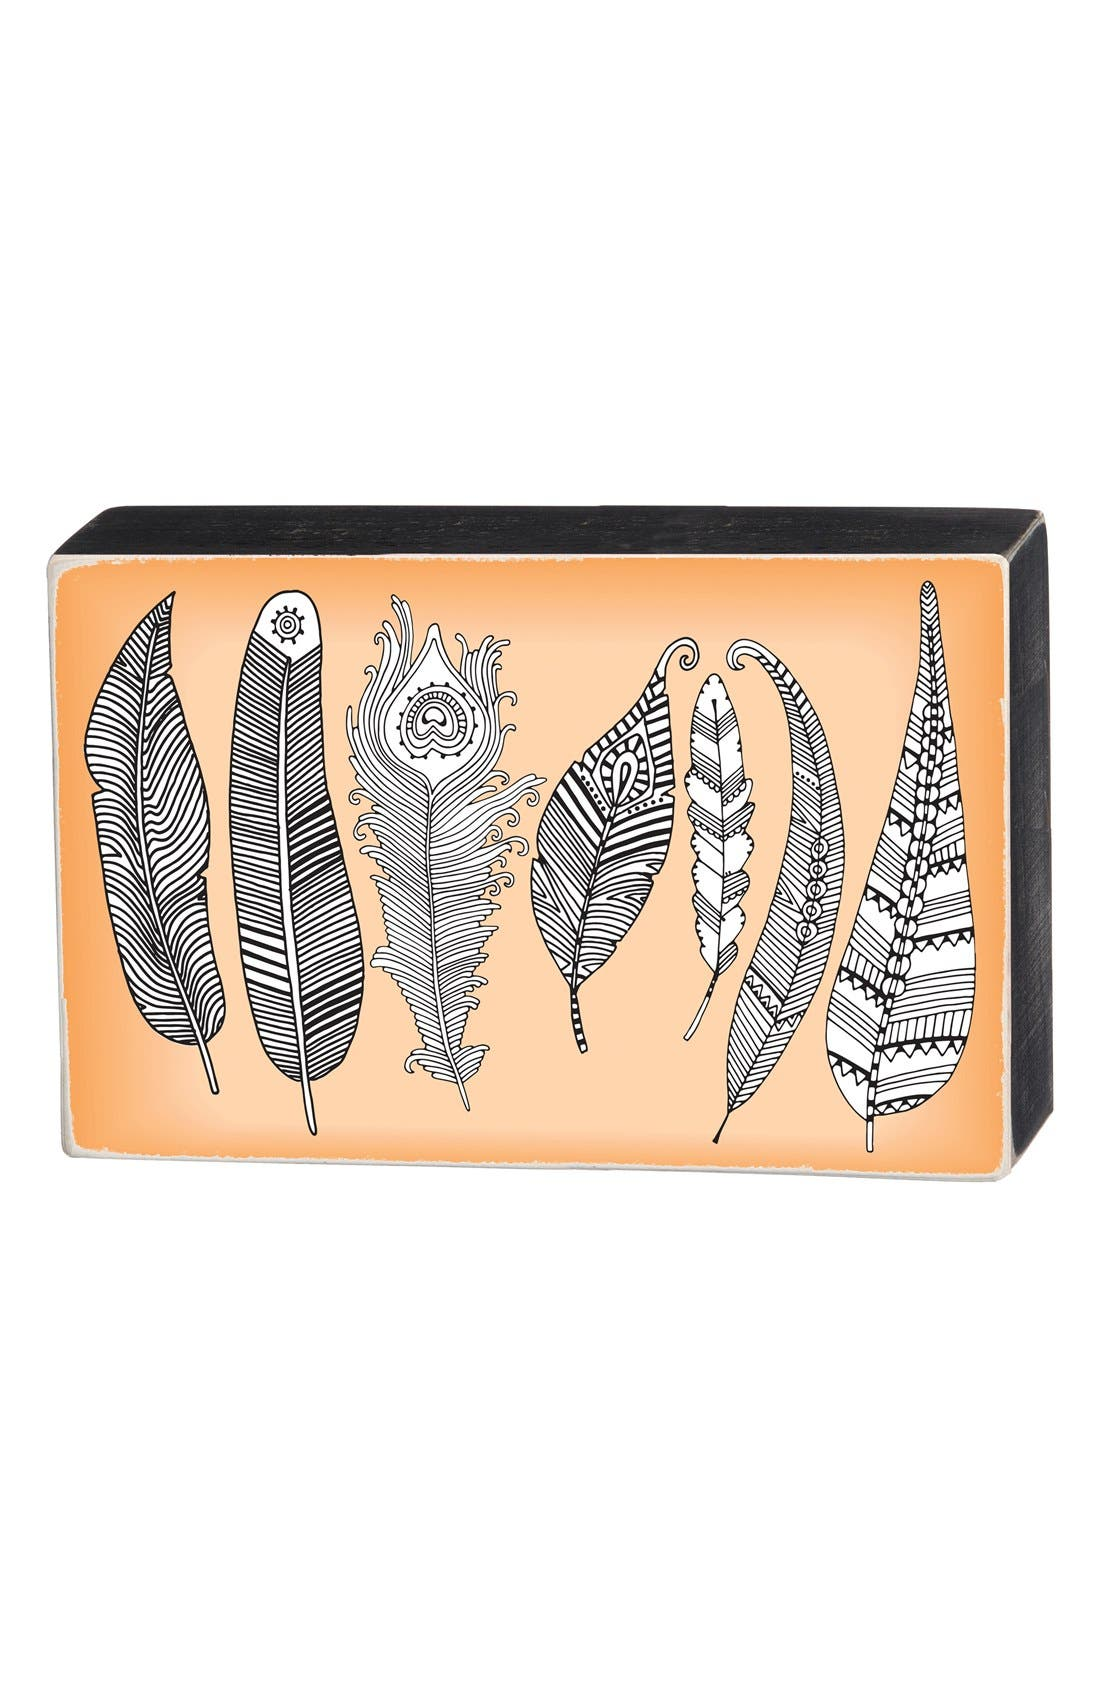 Primitives by Kathy 'Color Your Own - Feathers' Box Sign